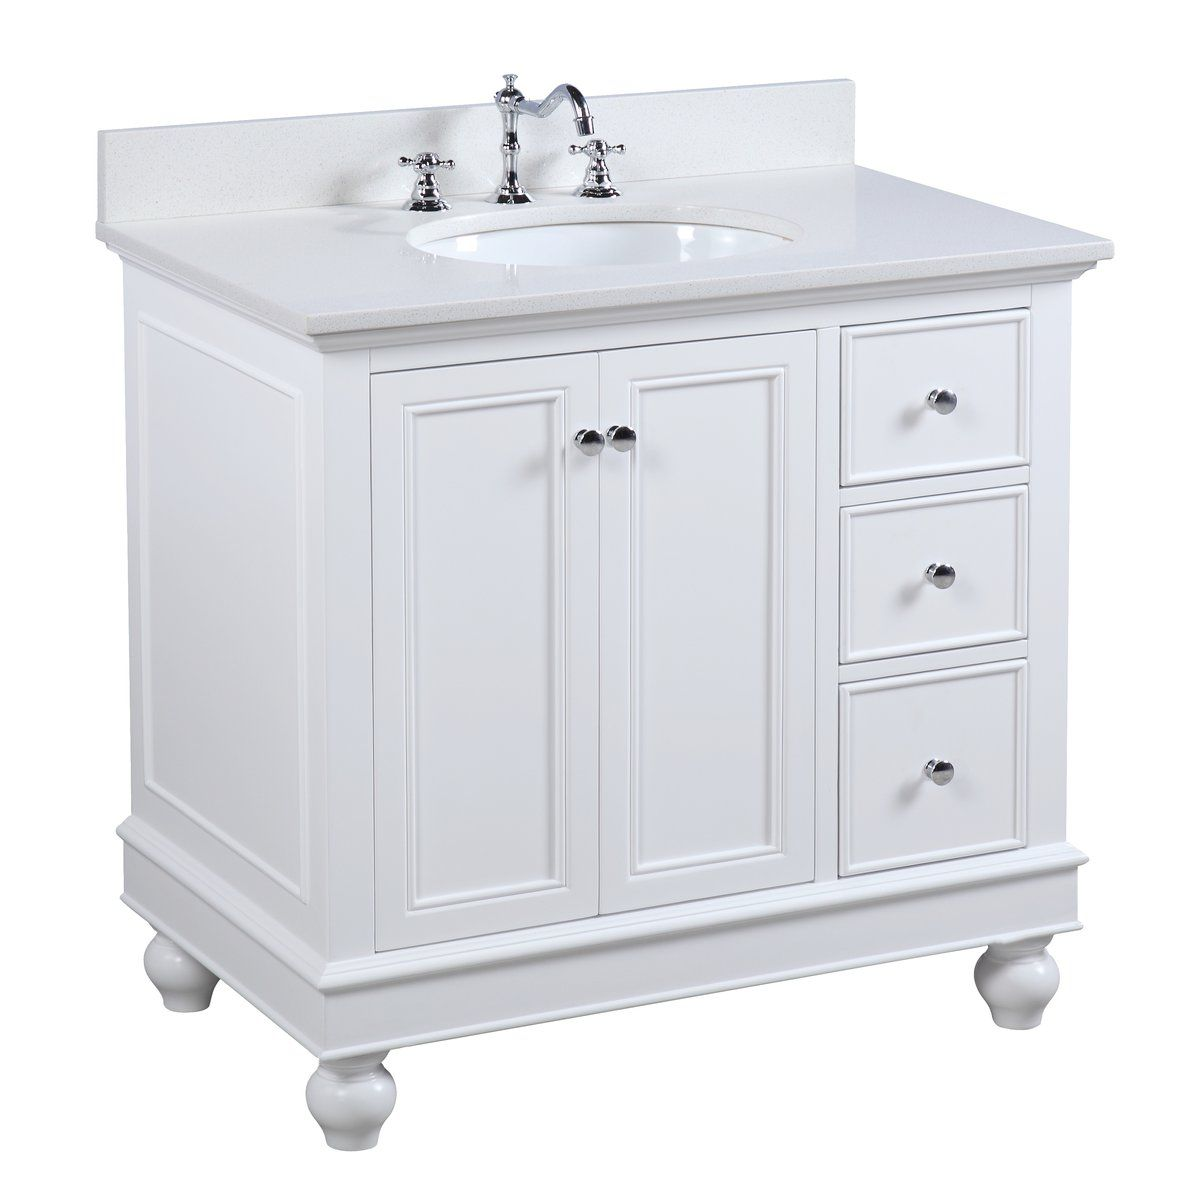 The Bella Undeniable Classic Beauty This Bathroom Vanity Set Features High End Furniture Grade White Vanity Bathroom Small Bathroom Storage Trendy Bathroom